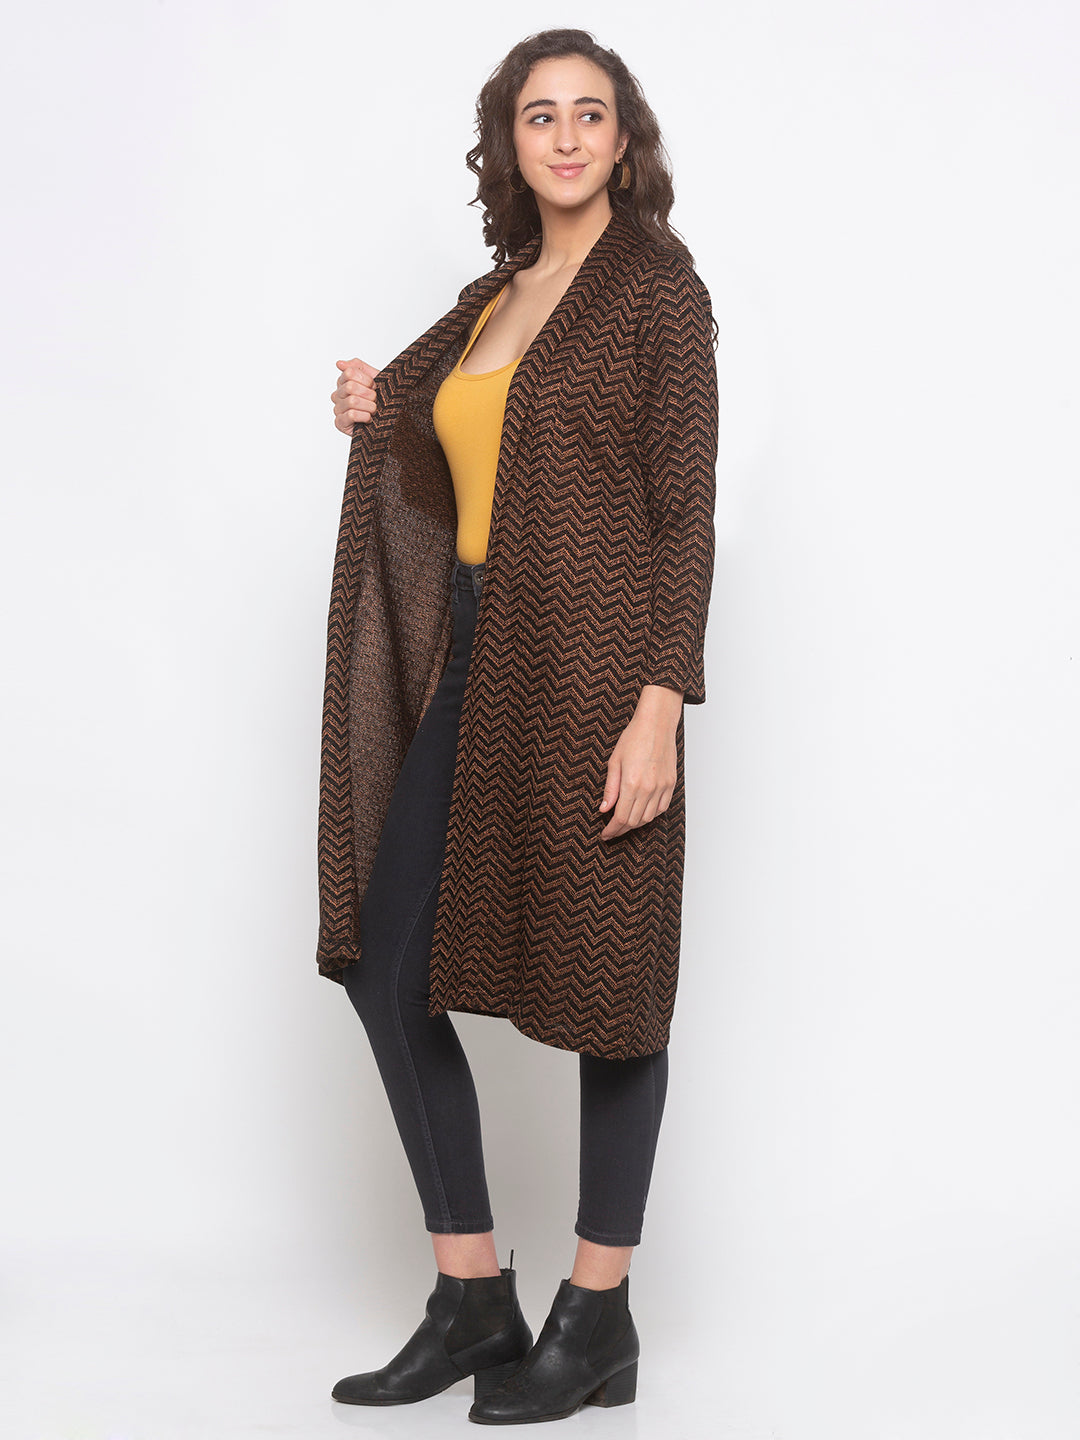 Globus Black Striped Shrug-2